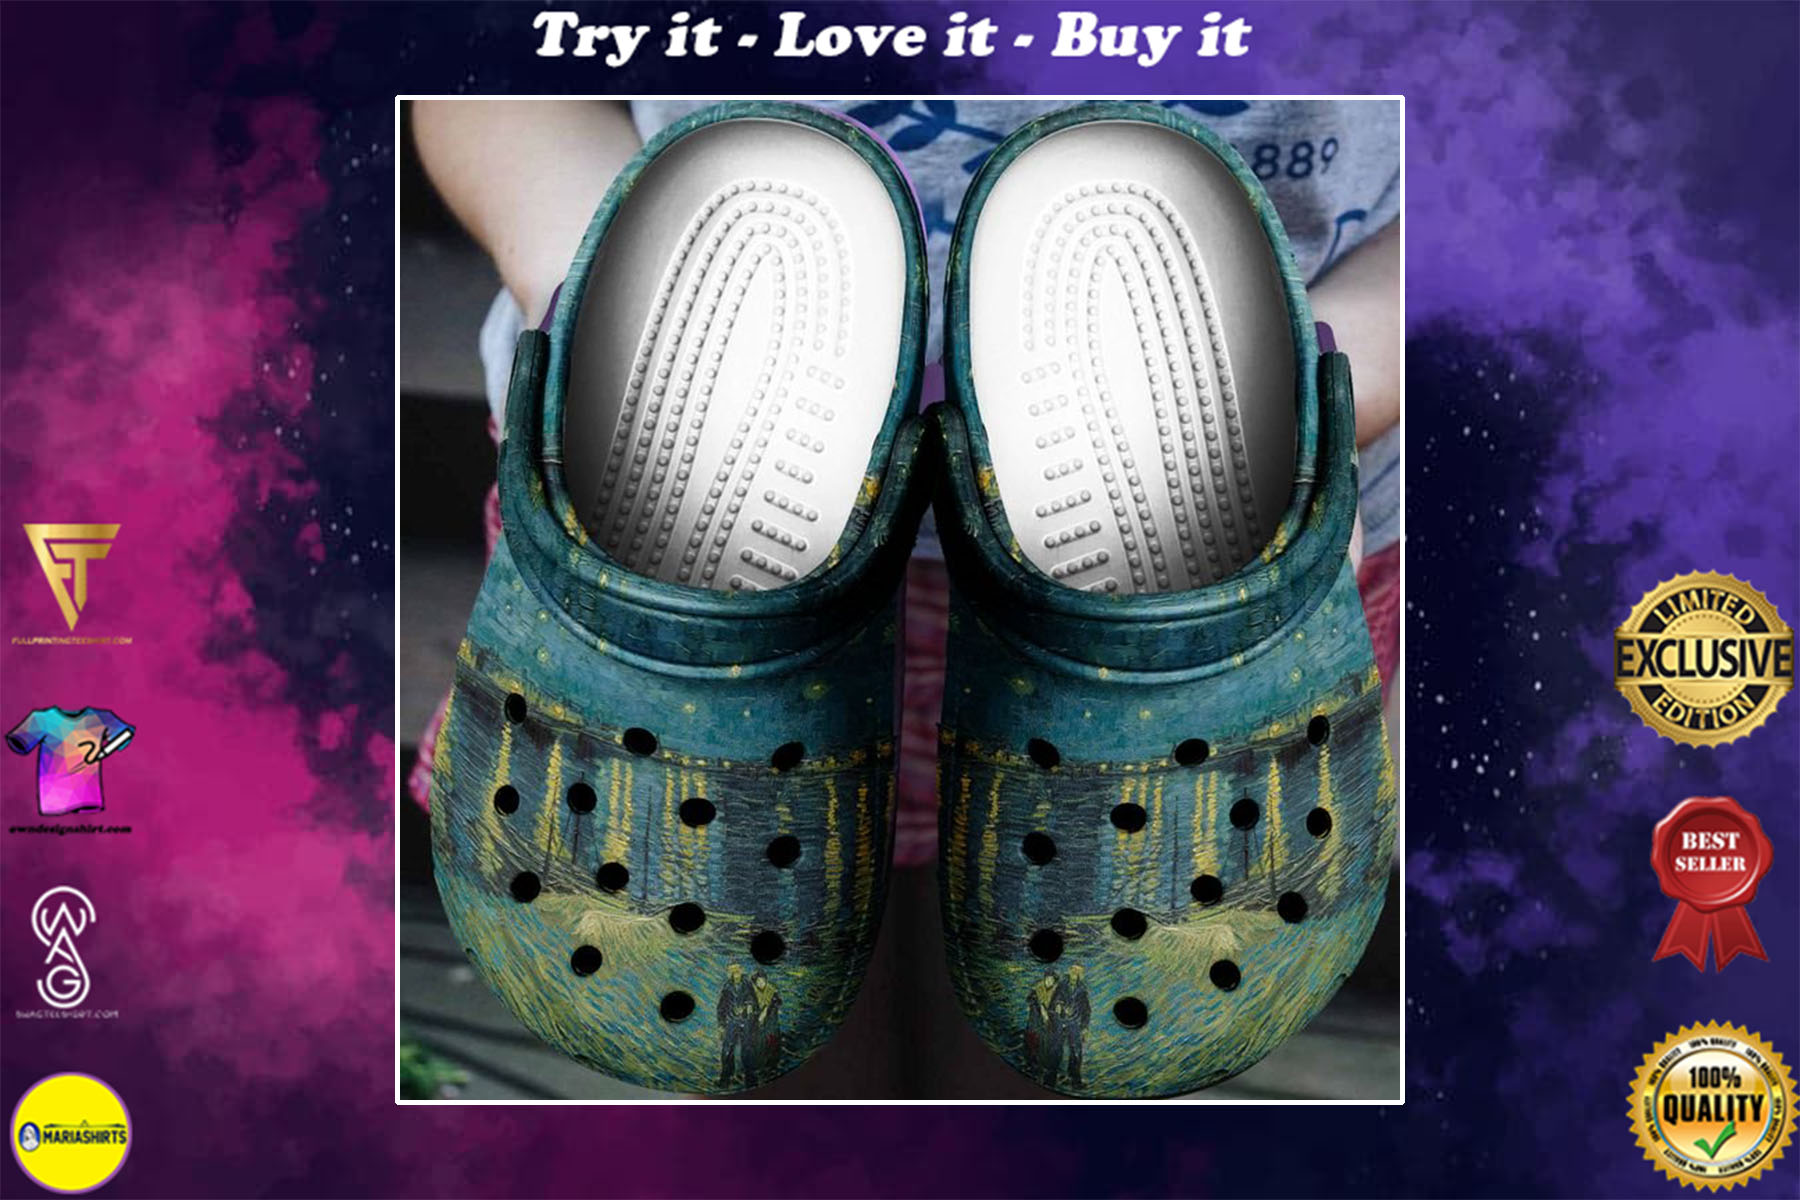 [special edition] starry night over the rhone van gogh crocs shoes - maria